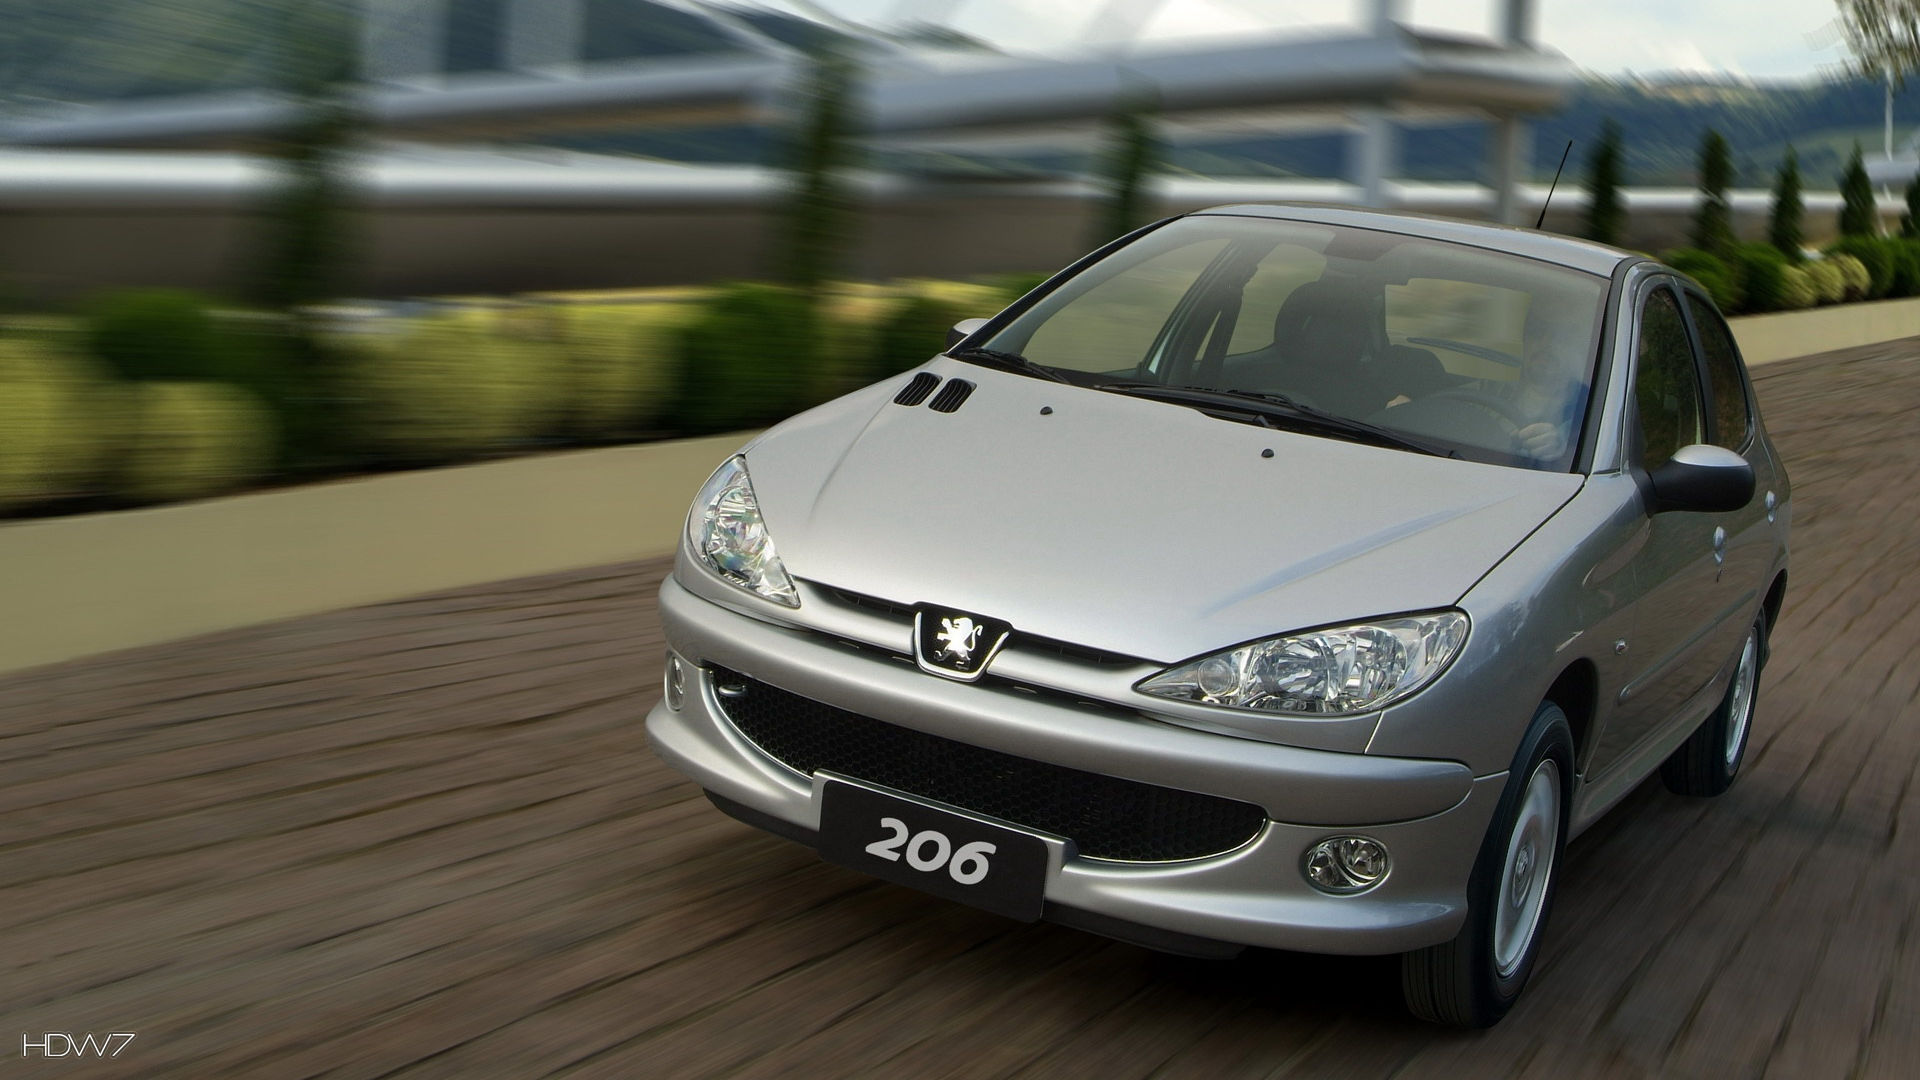 Peugeot 206 2008 Car Hd Wallpaper Hd Wallpaper Gallery 258